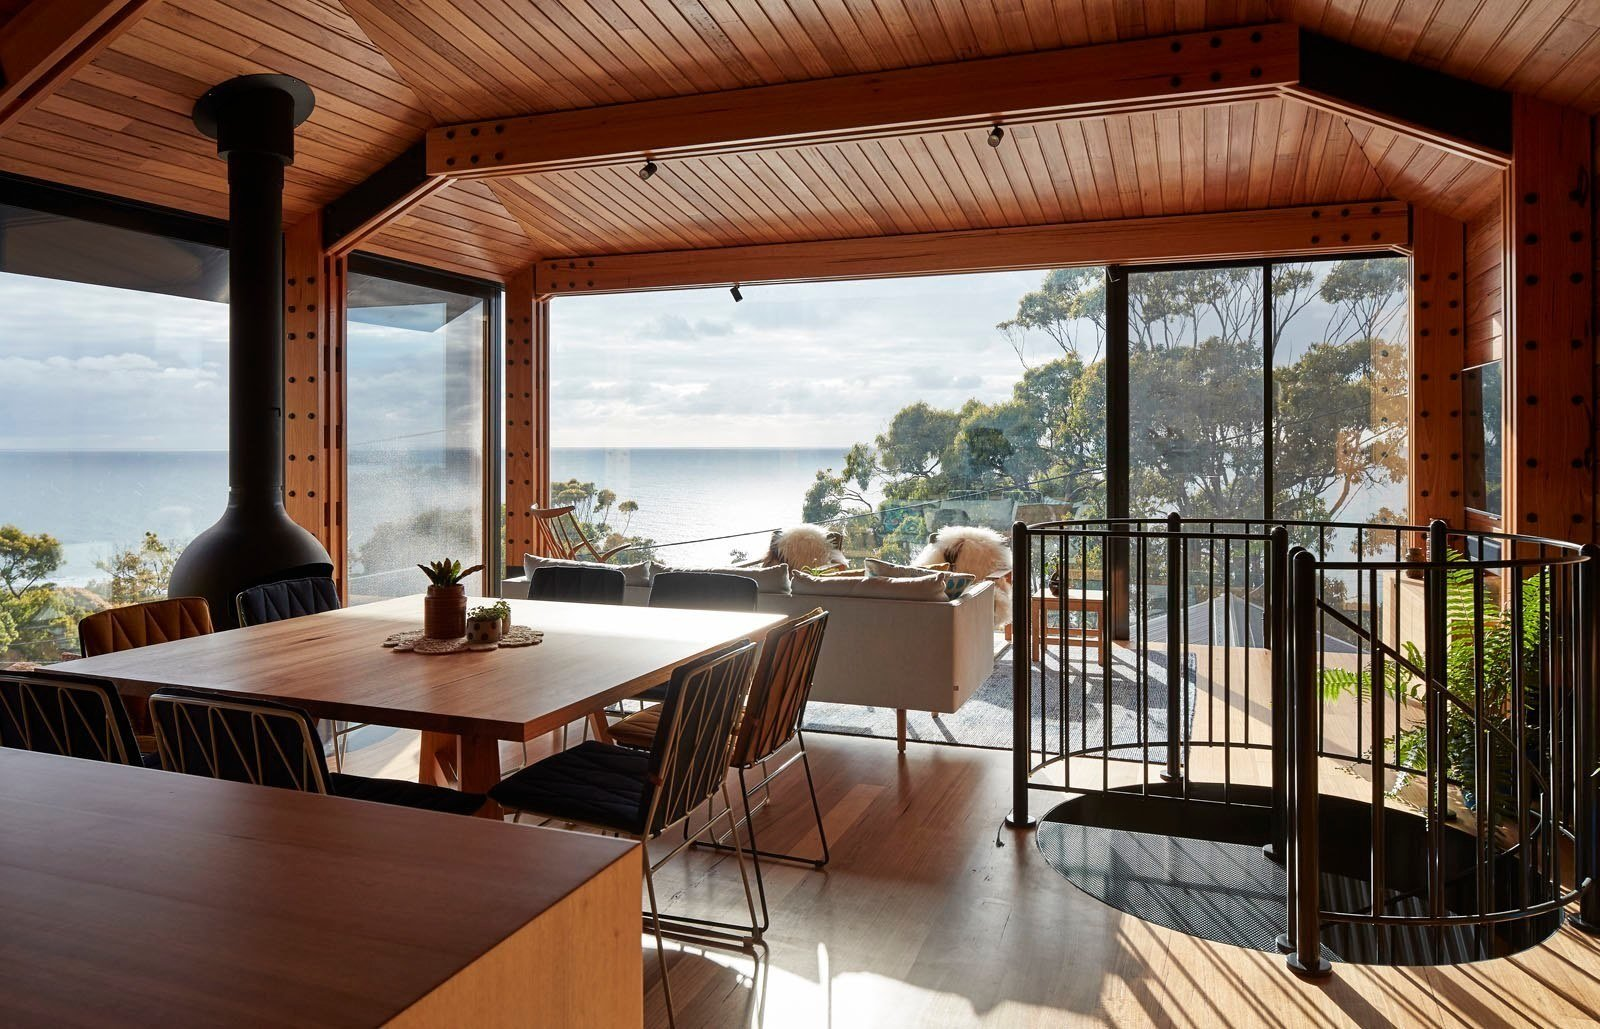 Photo 4 of 12 in A Great Ocean Road Shack With a View Gets a Sustainable Update